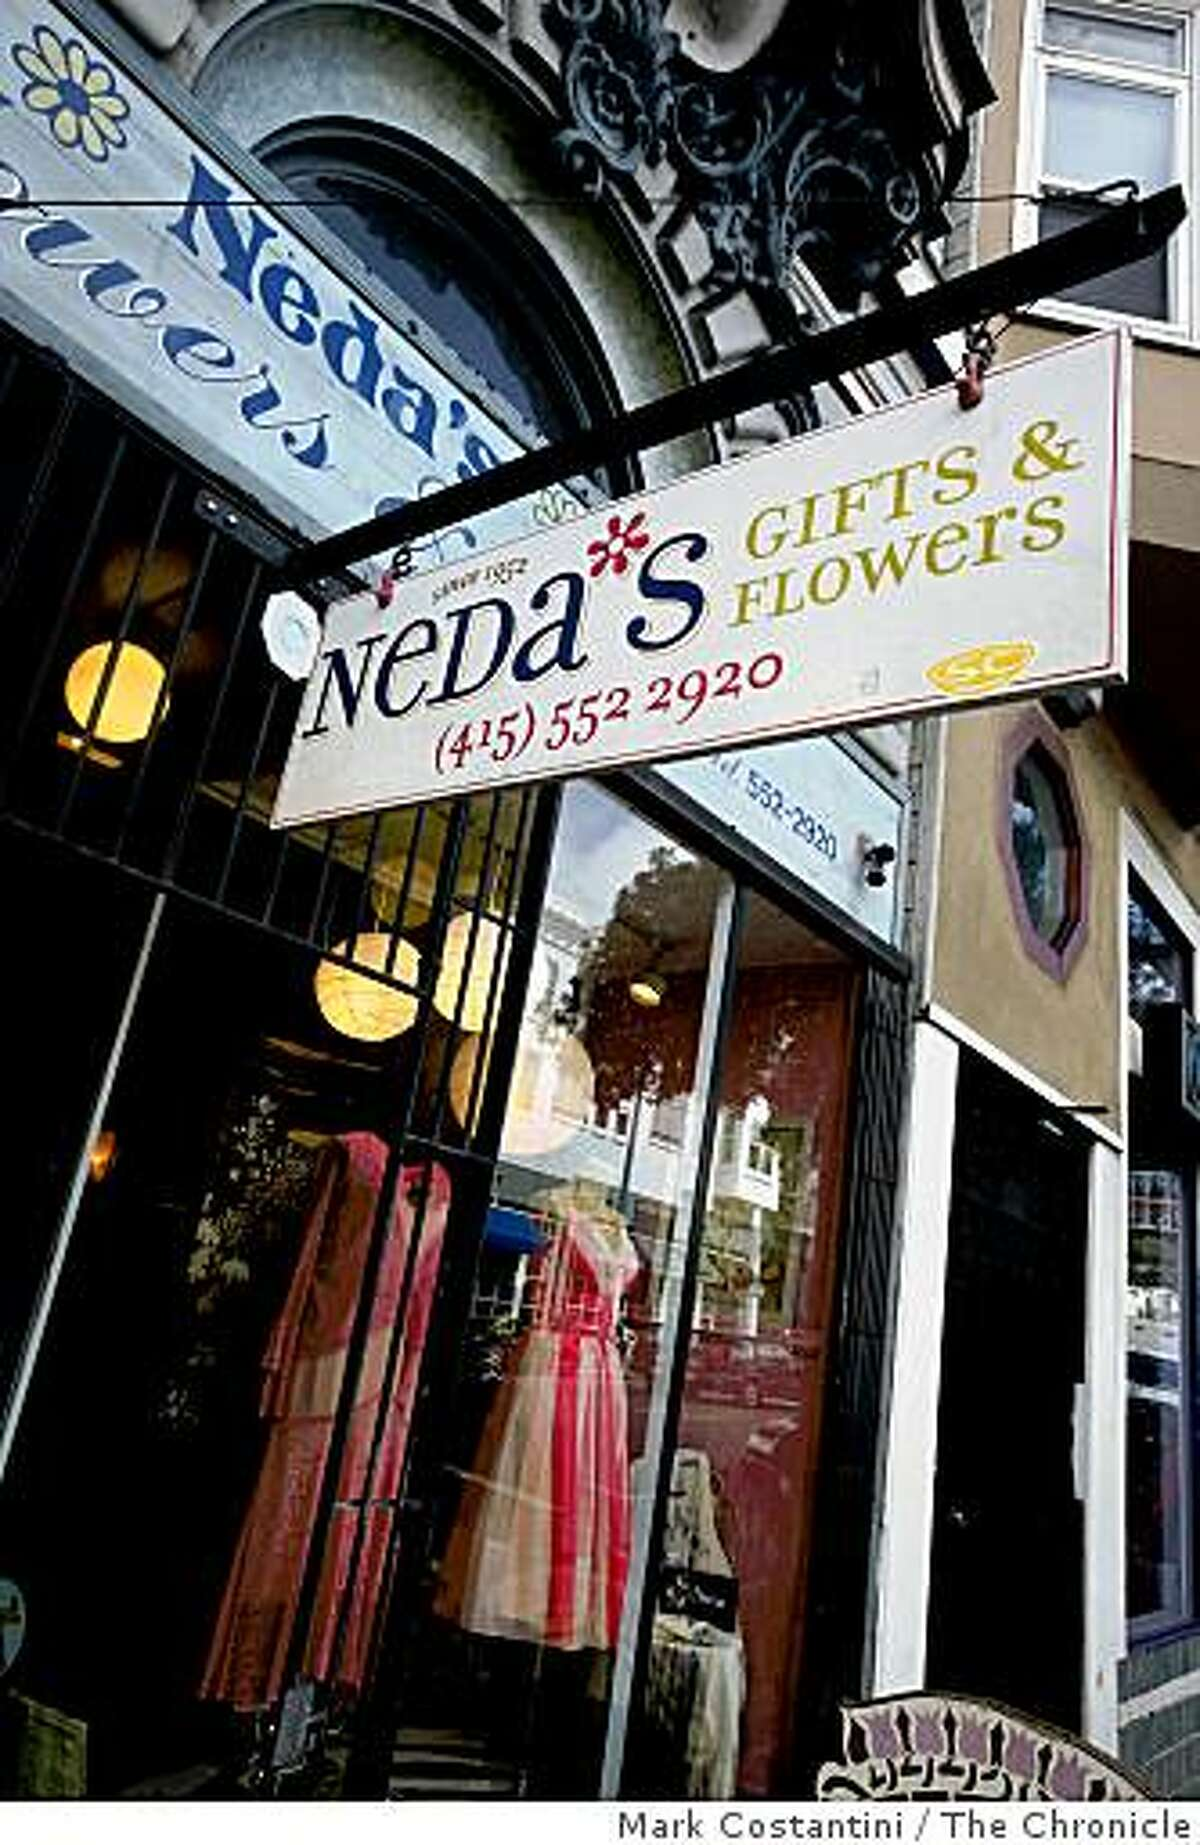 Neda's on Haight St. is photographed in San Francisco, Calif. on Thursday, February 26, 2009.